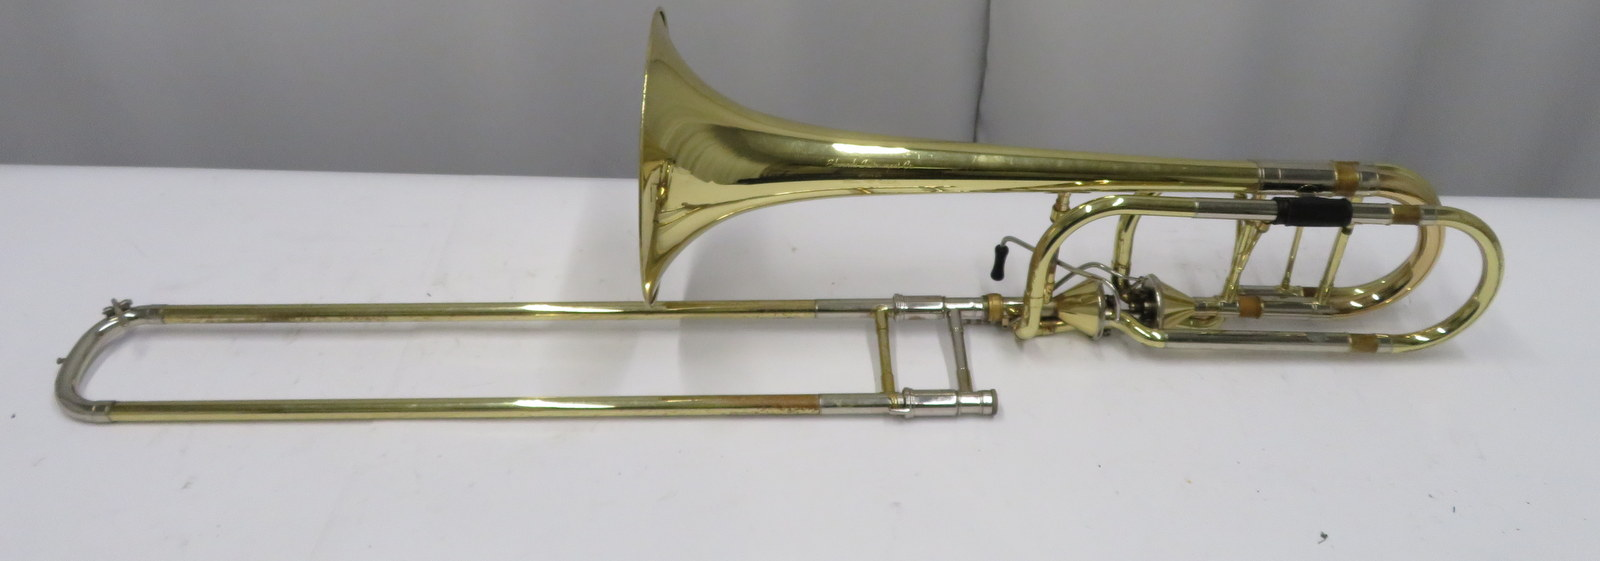 Lot 43 - Edwards Instruments 1119CF trombone with case. Serial number: 0907037.